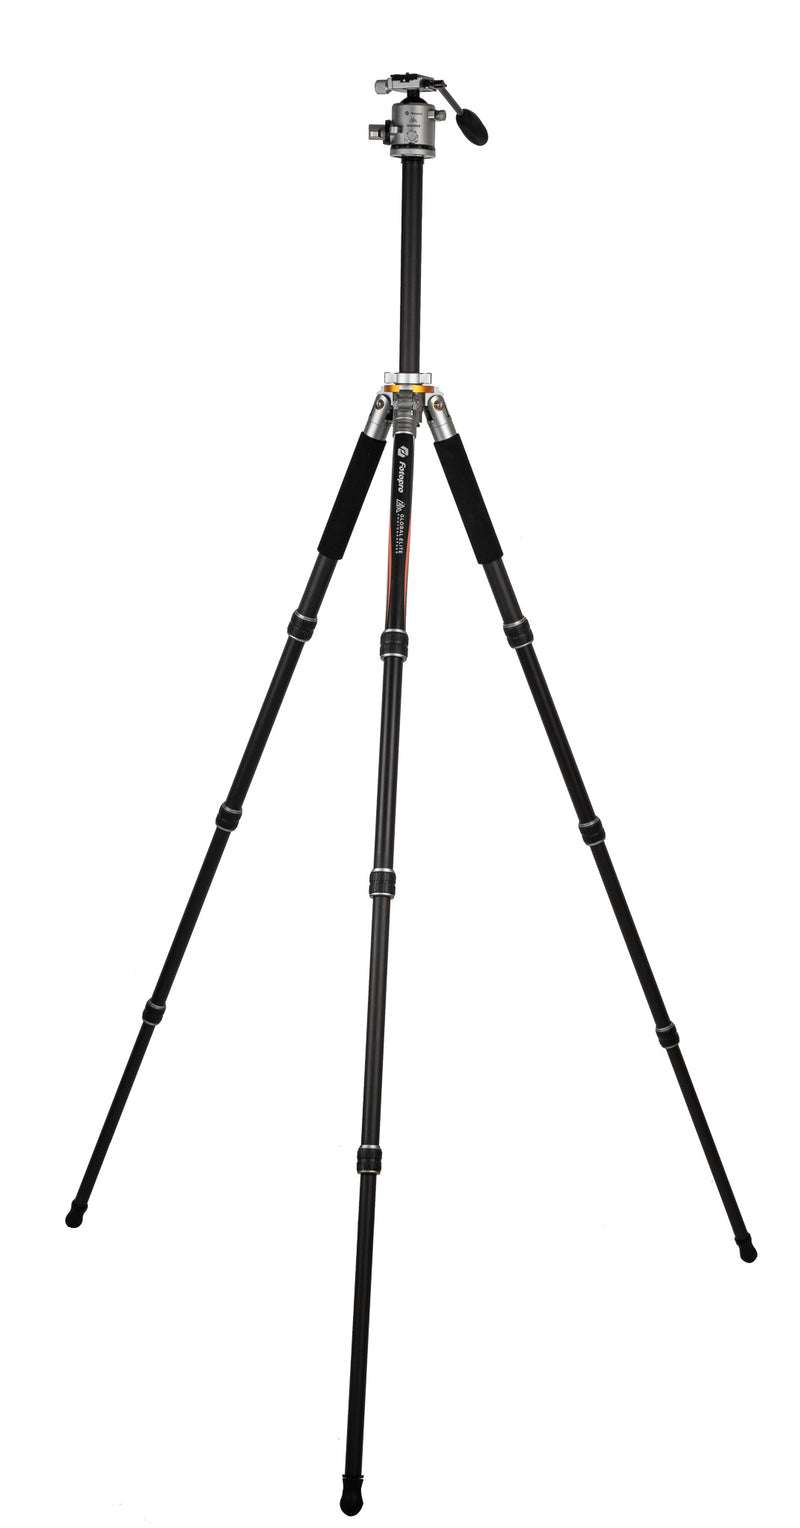 Fotopro Global Elite Photographer Series TL-74CL Carbon Fiber Tripod with LG-9R Ball Head